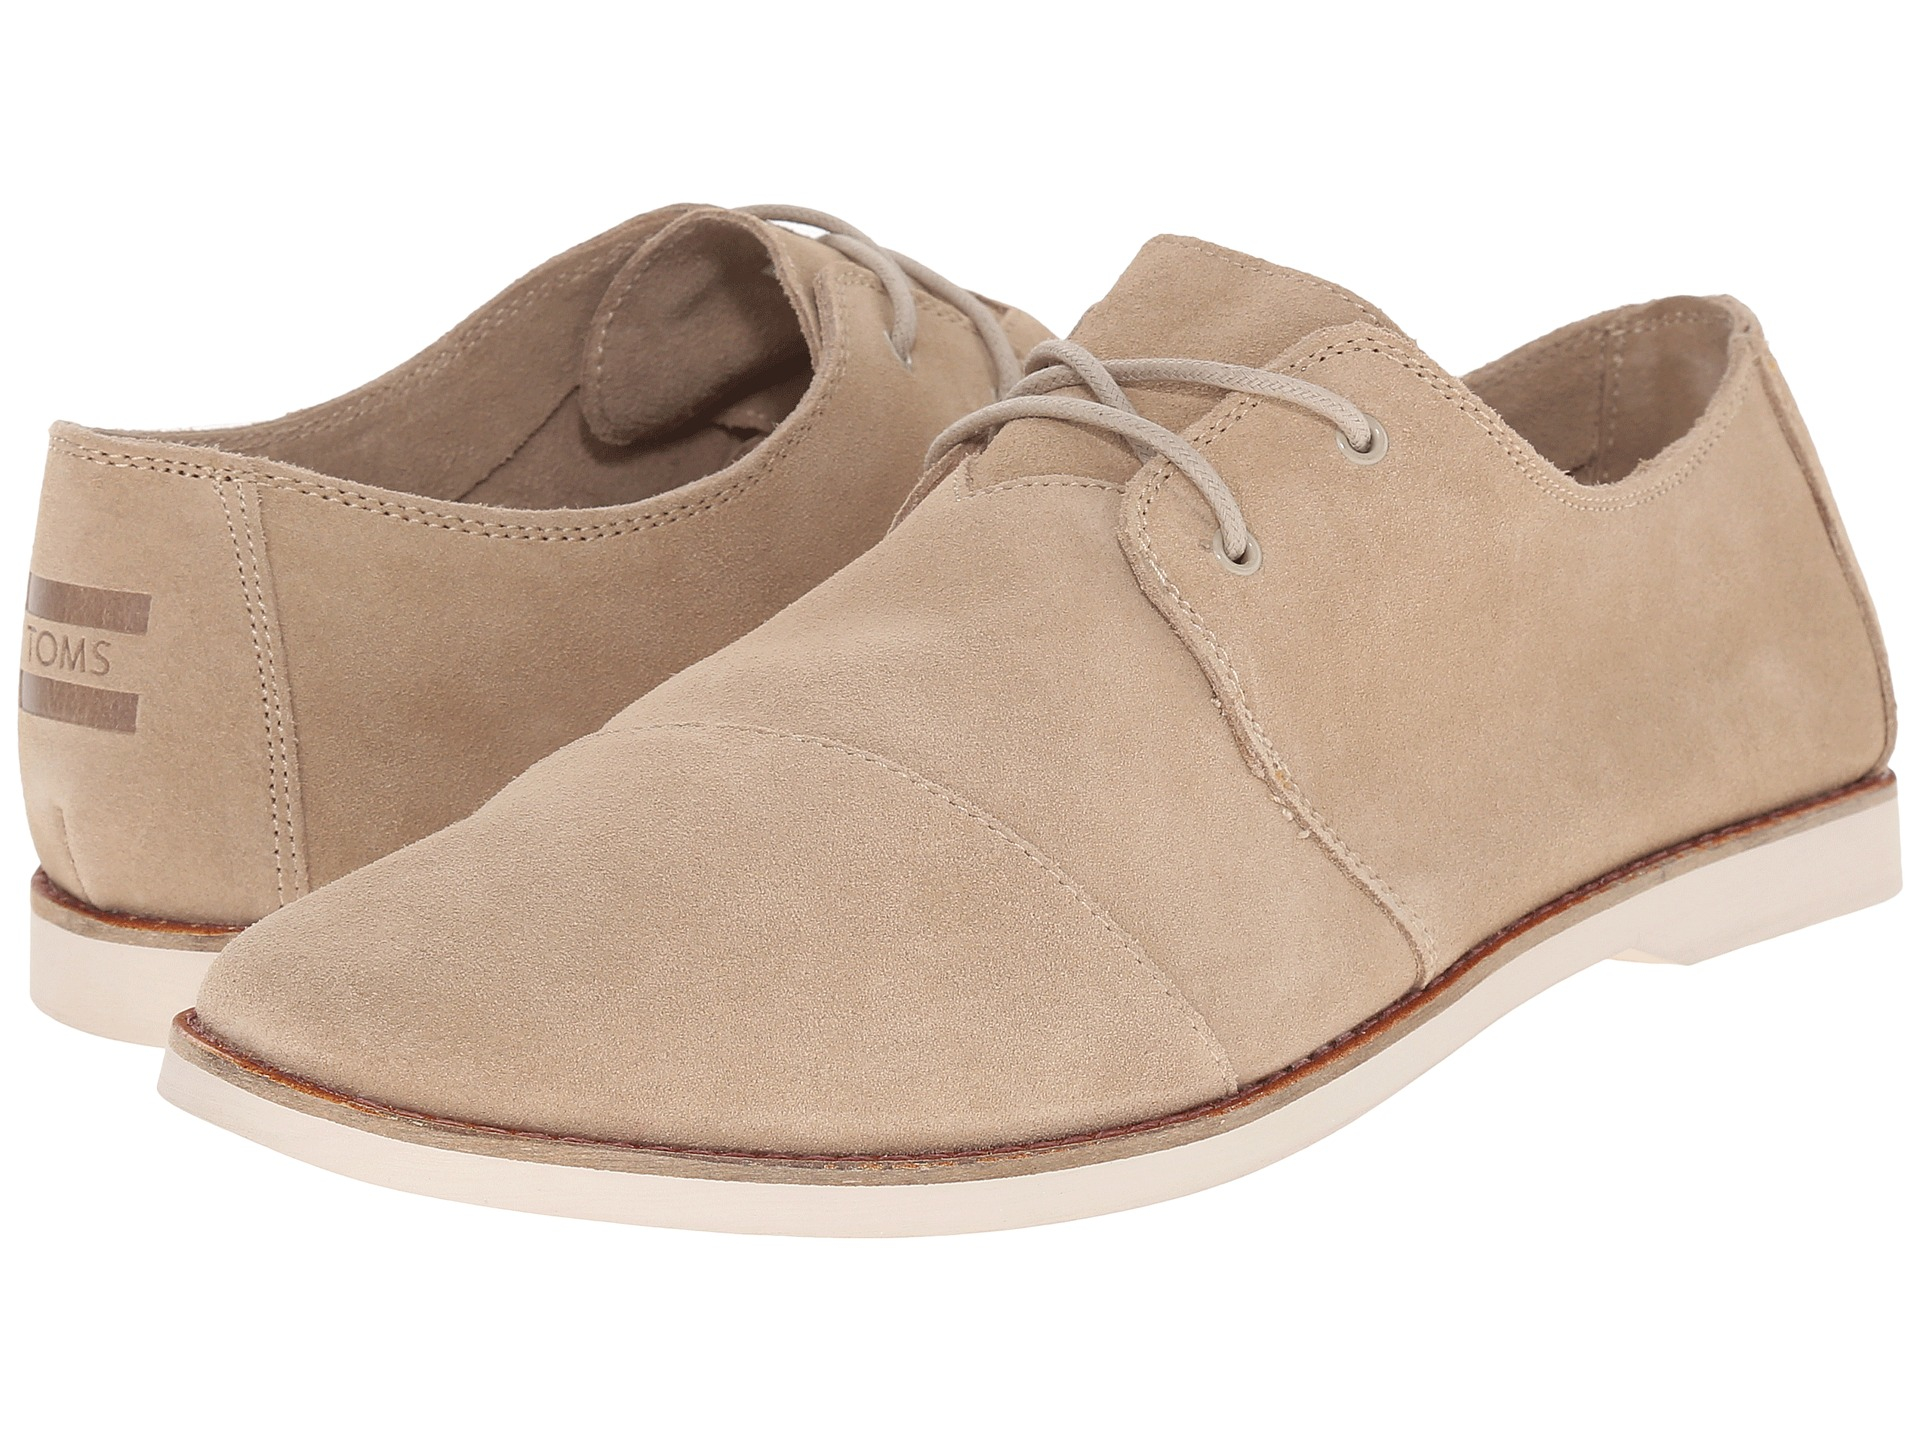 Zappos Shoes Tom S